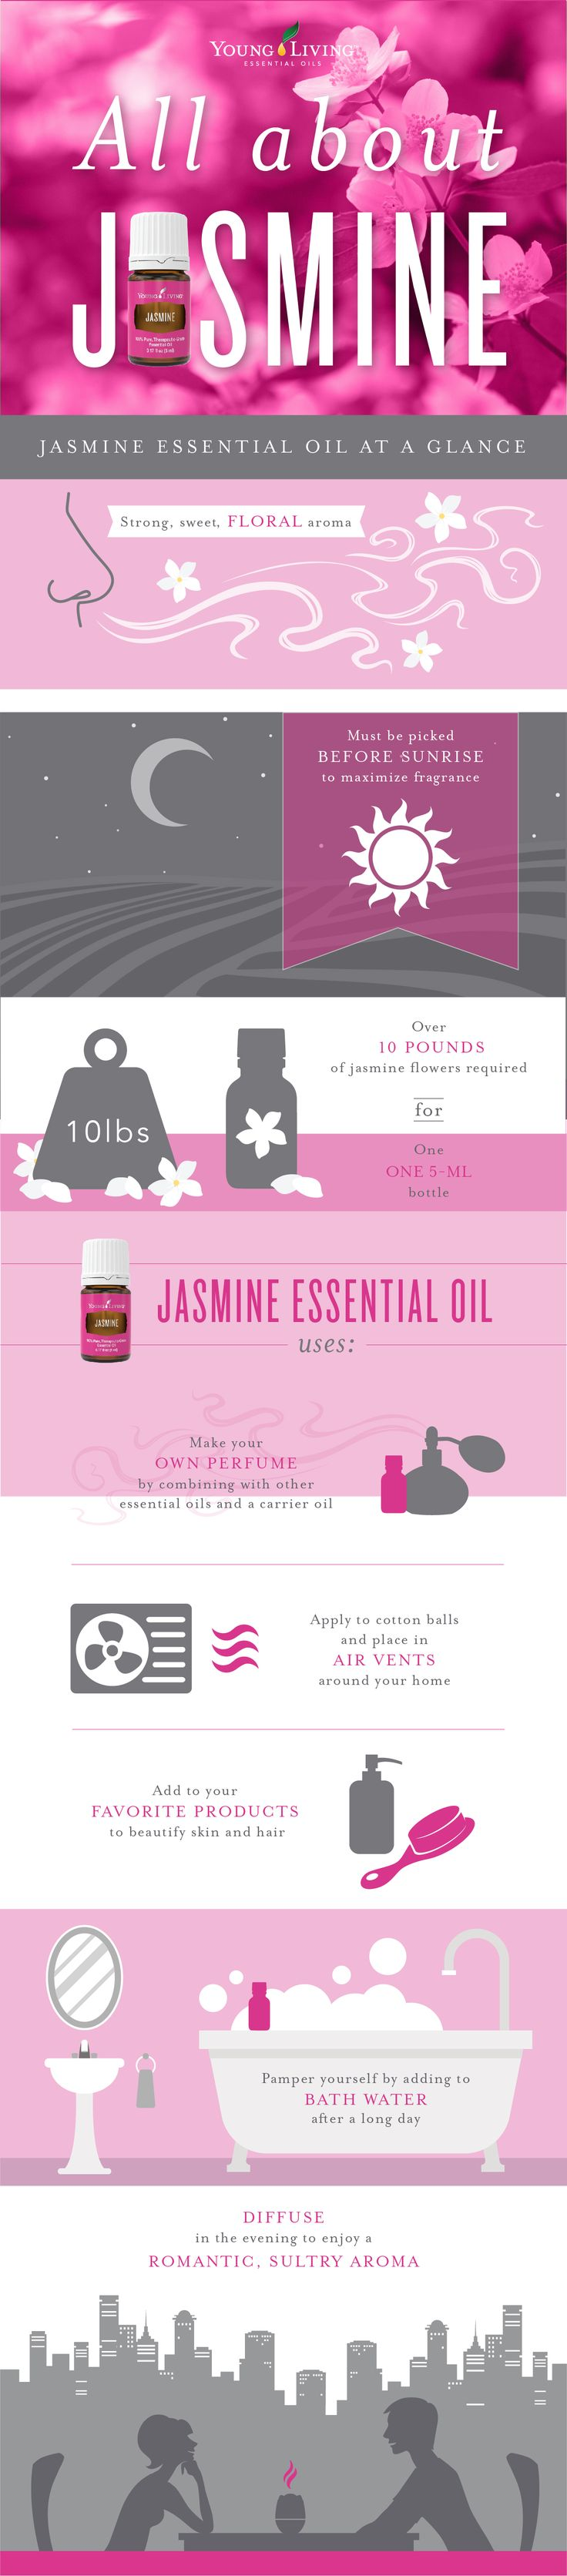 All About Jasmine Infographic https://yldist.com/naturalwonders/